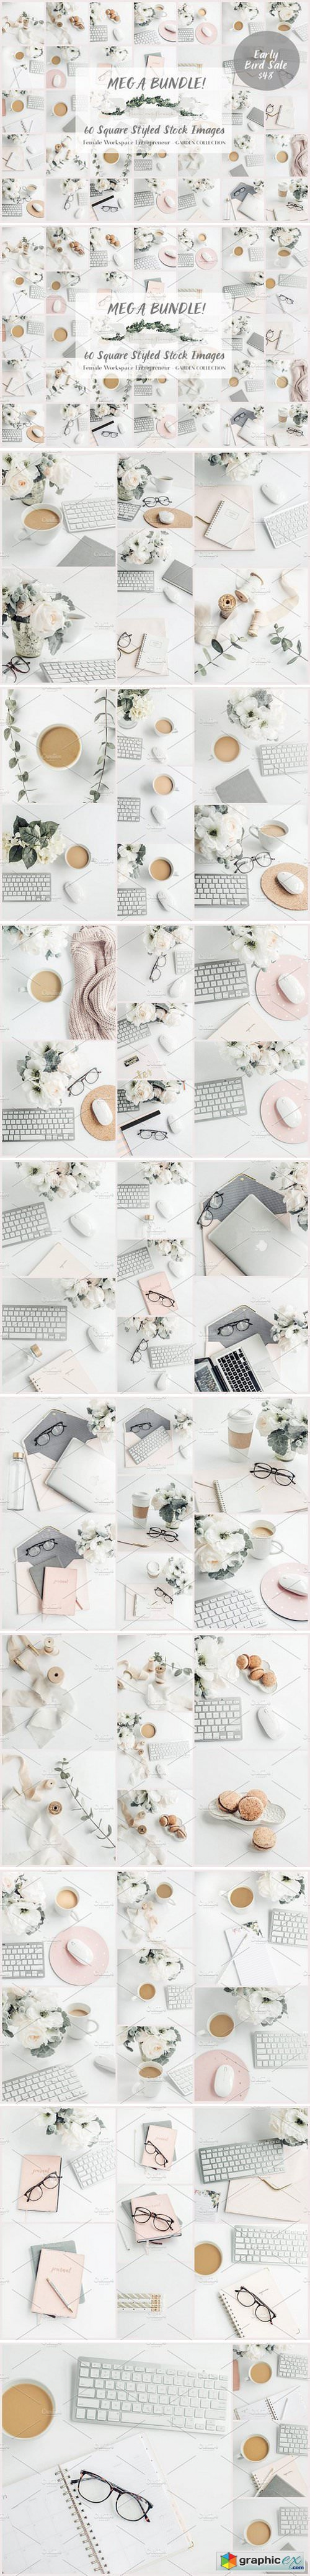 Mega Bundle- 60 Social Media images